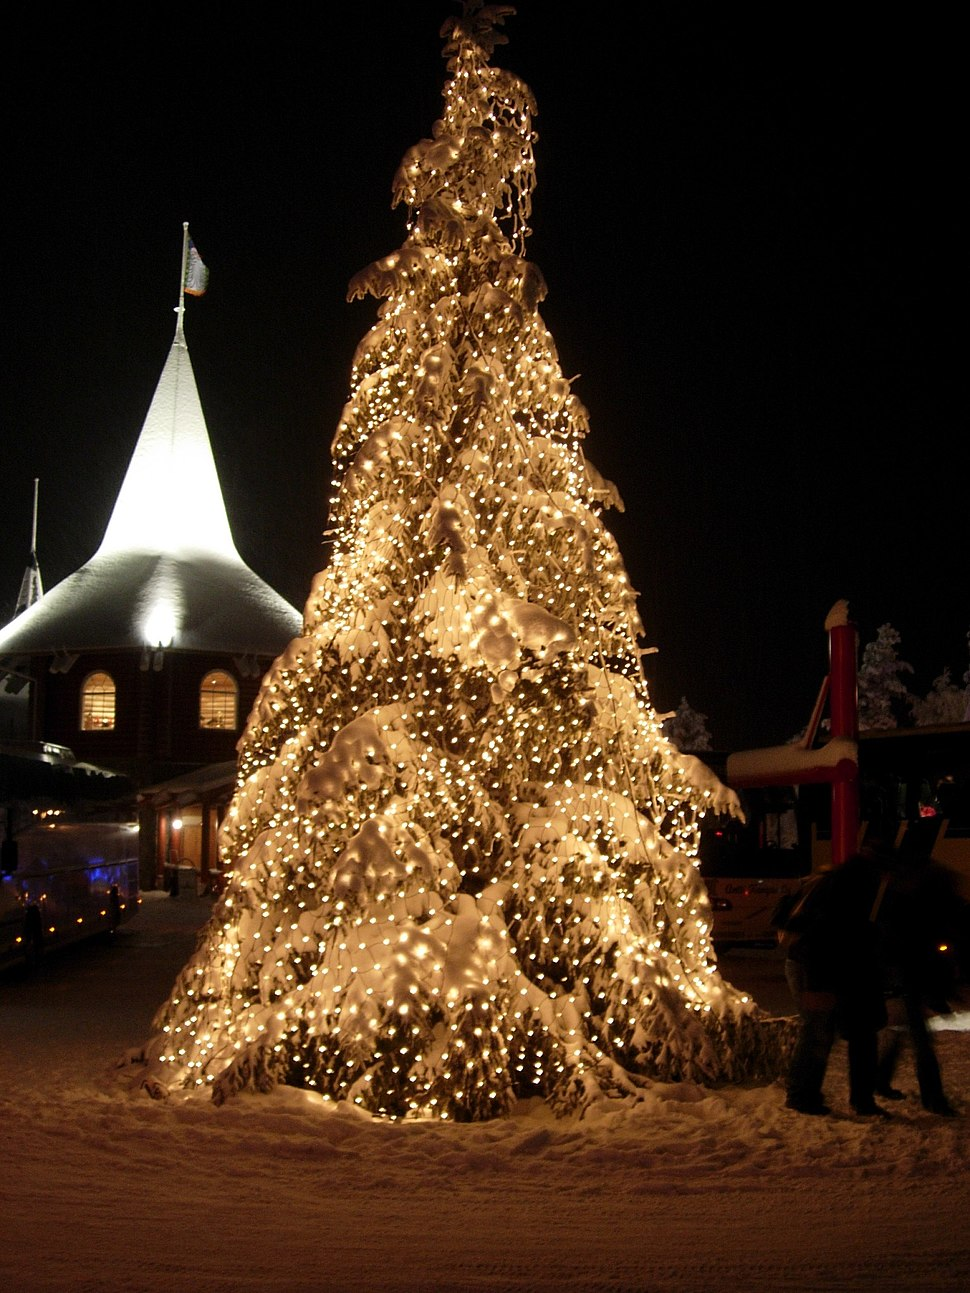 Christmas tree at Santa Claus' Village